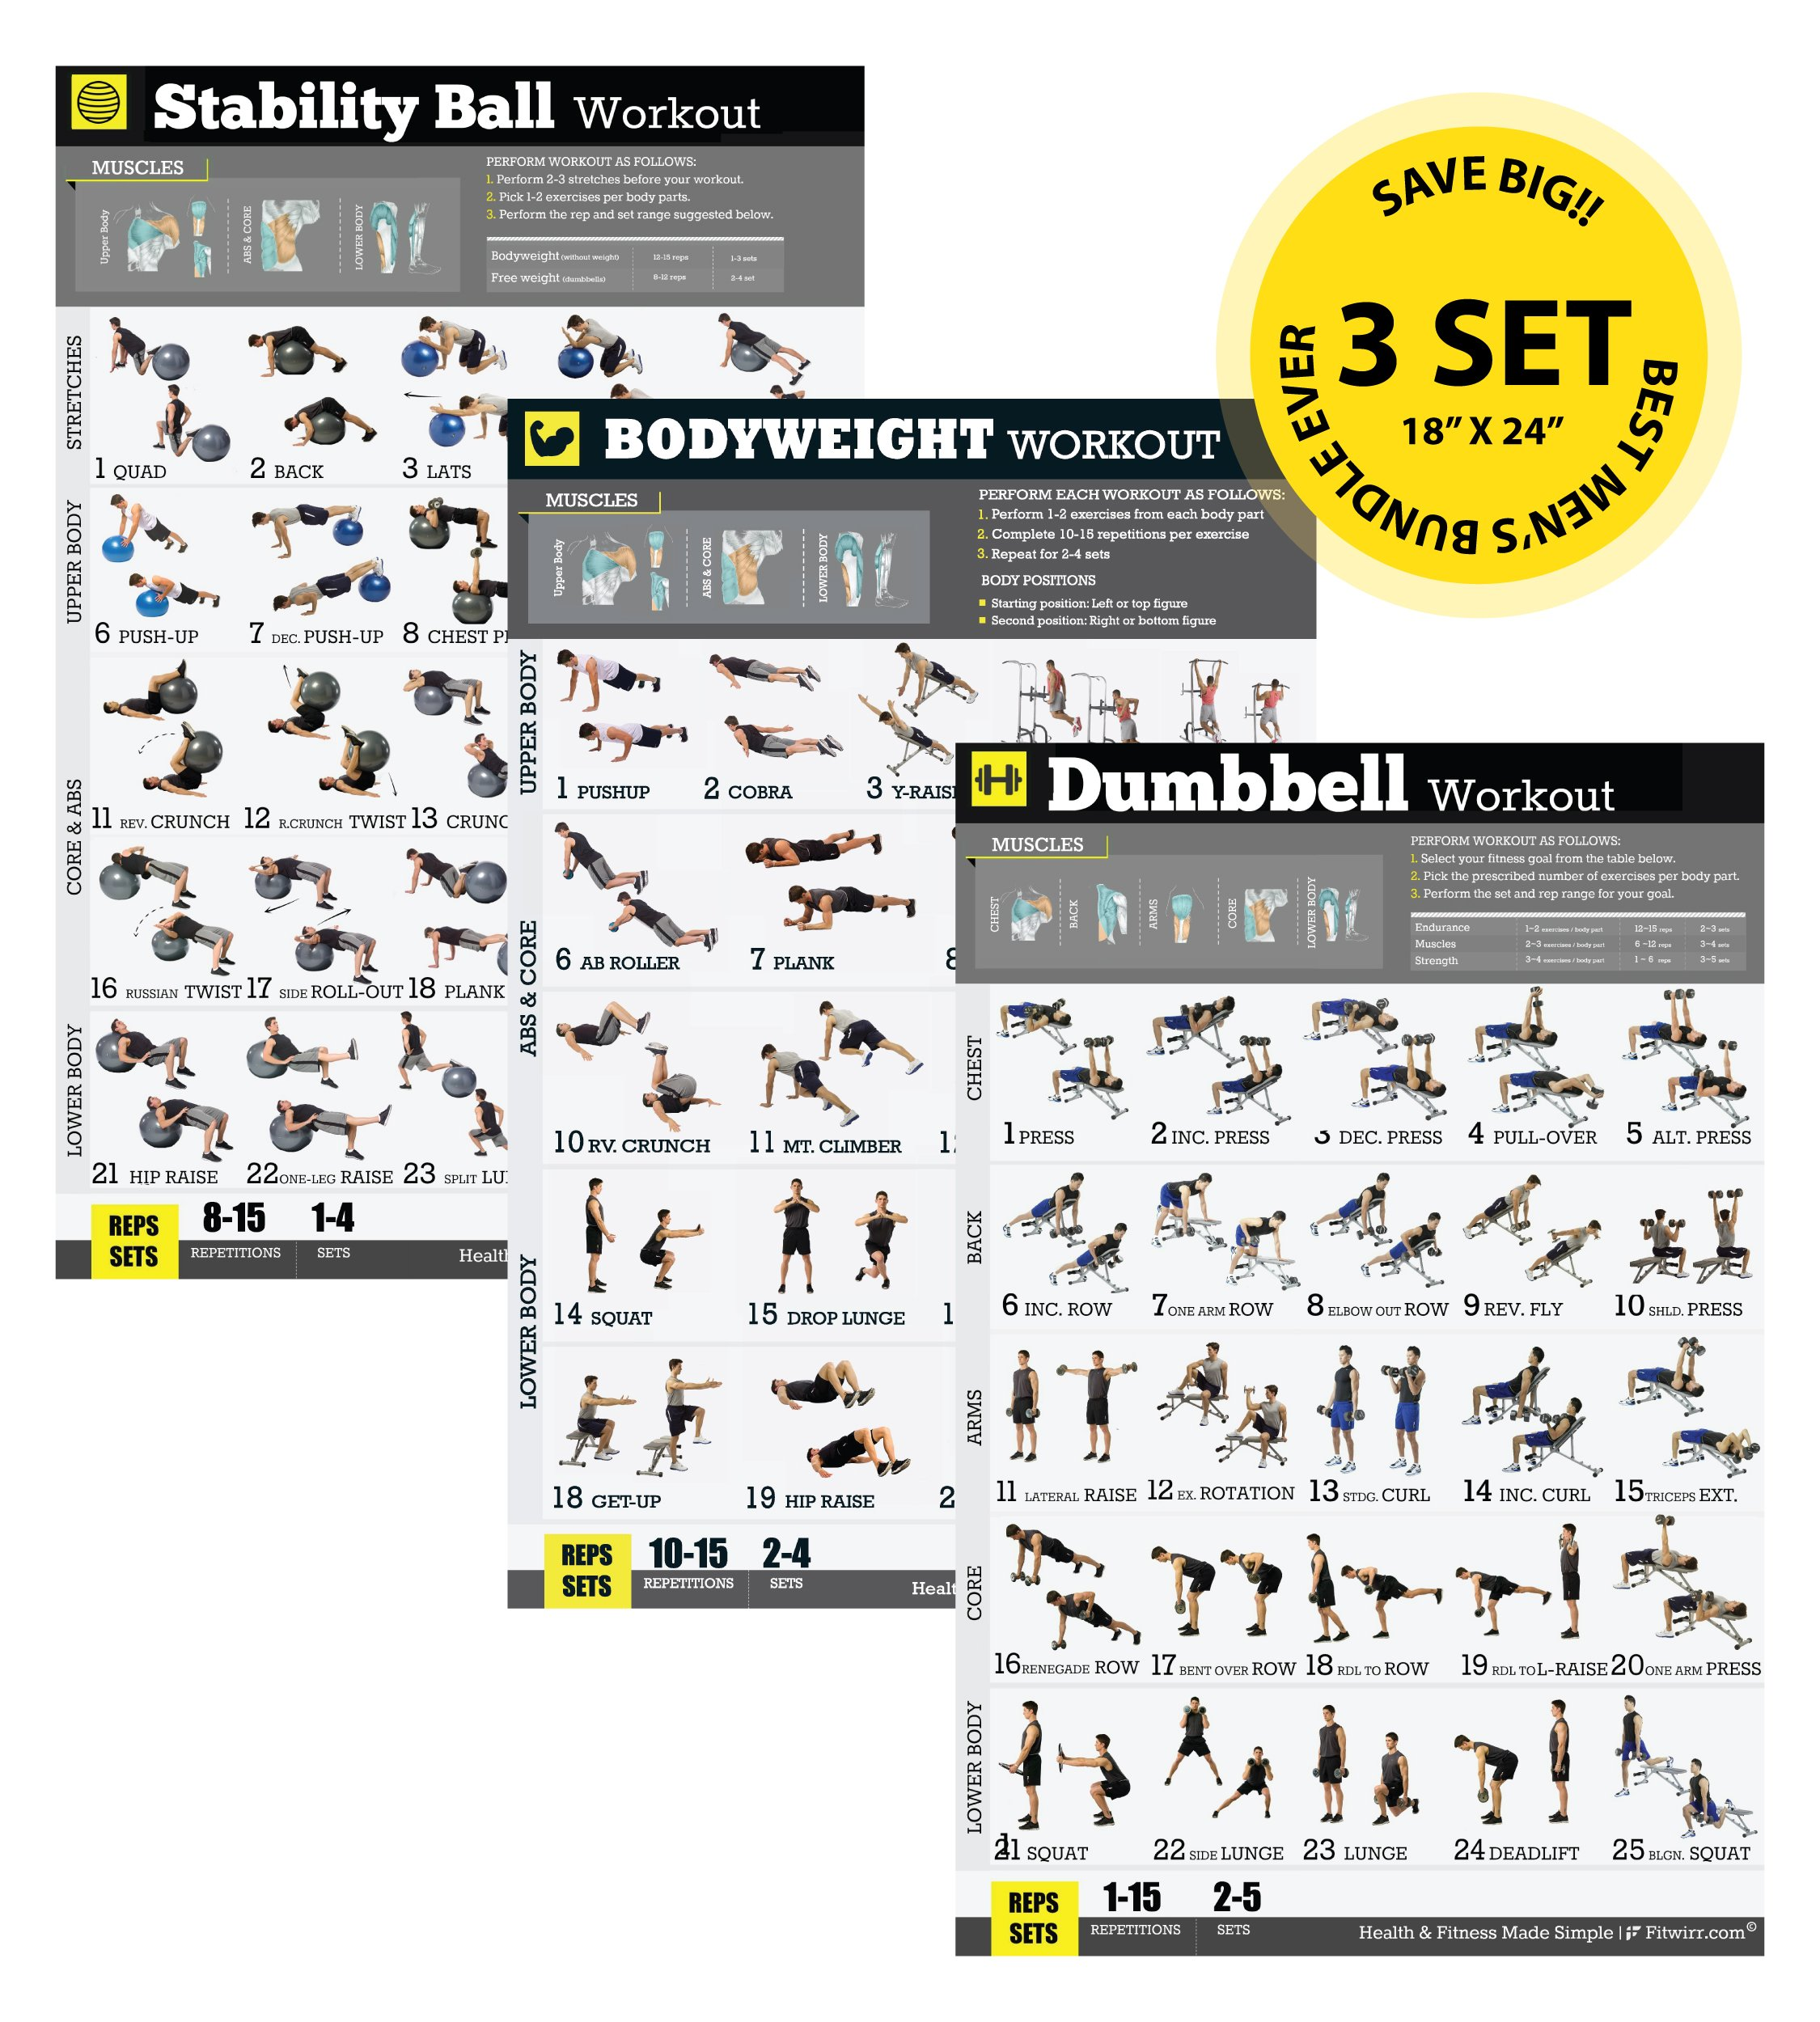 Home/Gym Exercise Poster 3-Pack Laminated - Build Strength, Muscles and Burn Fat - Completely Transform Your Body - Workout Posters - Strength Training - Weight Lifting - Body Building Guide 18''x24''